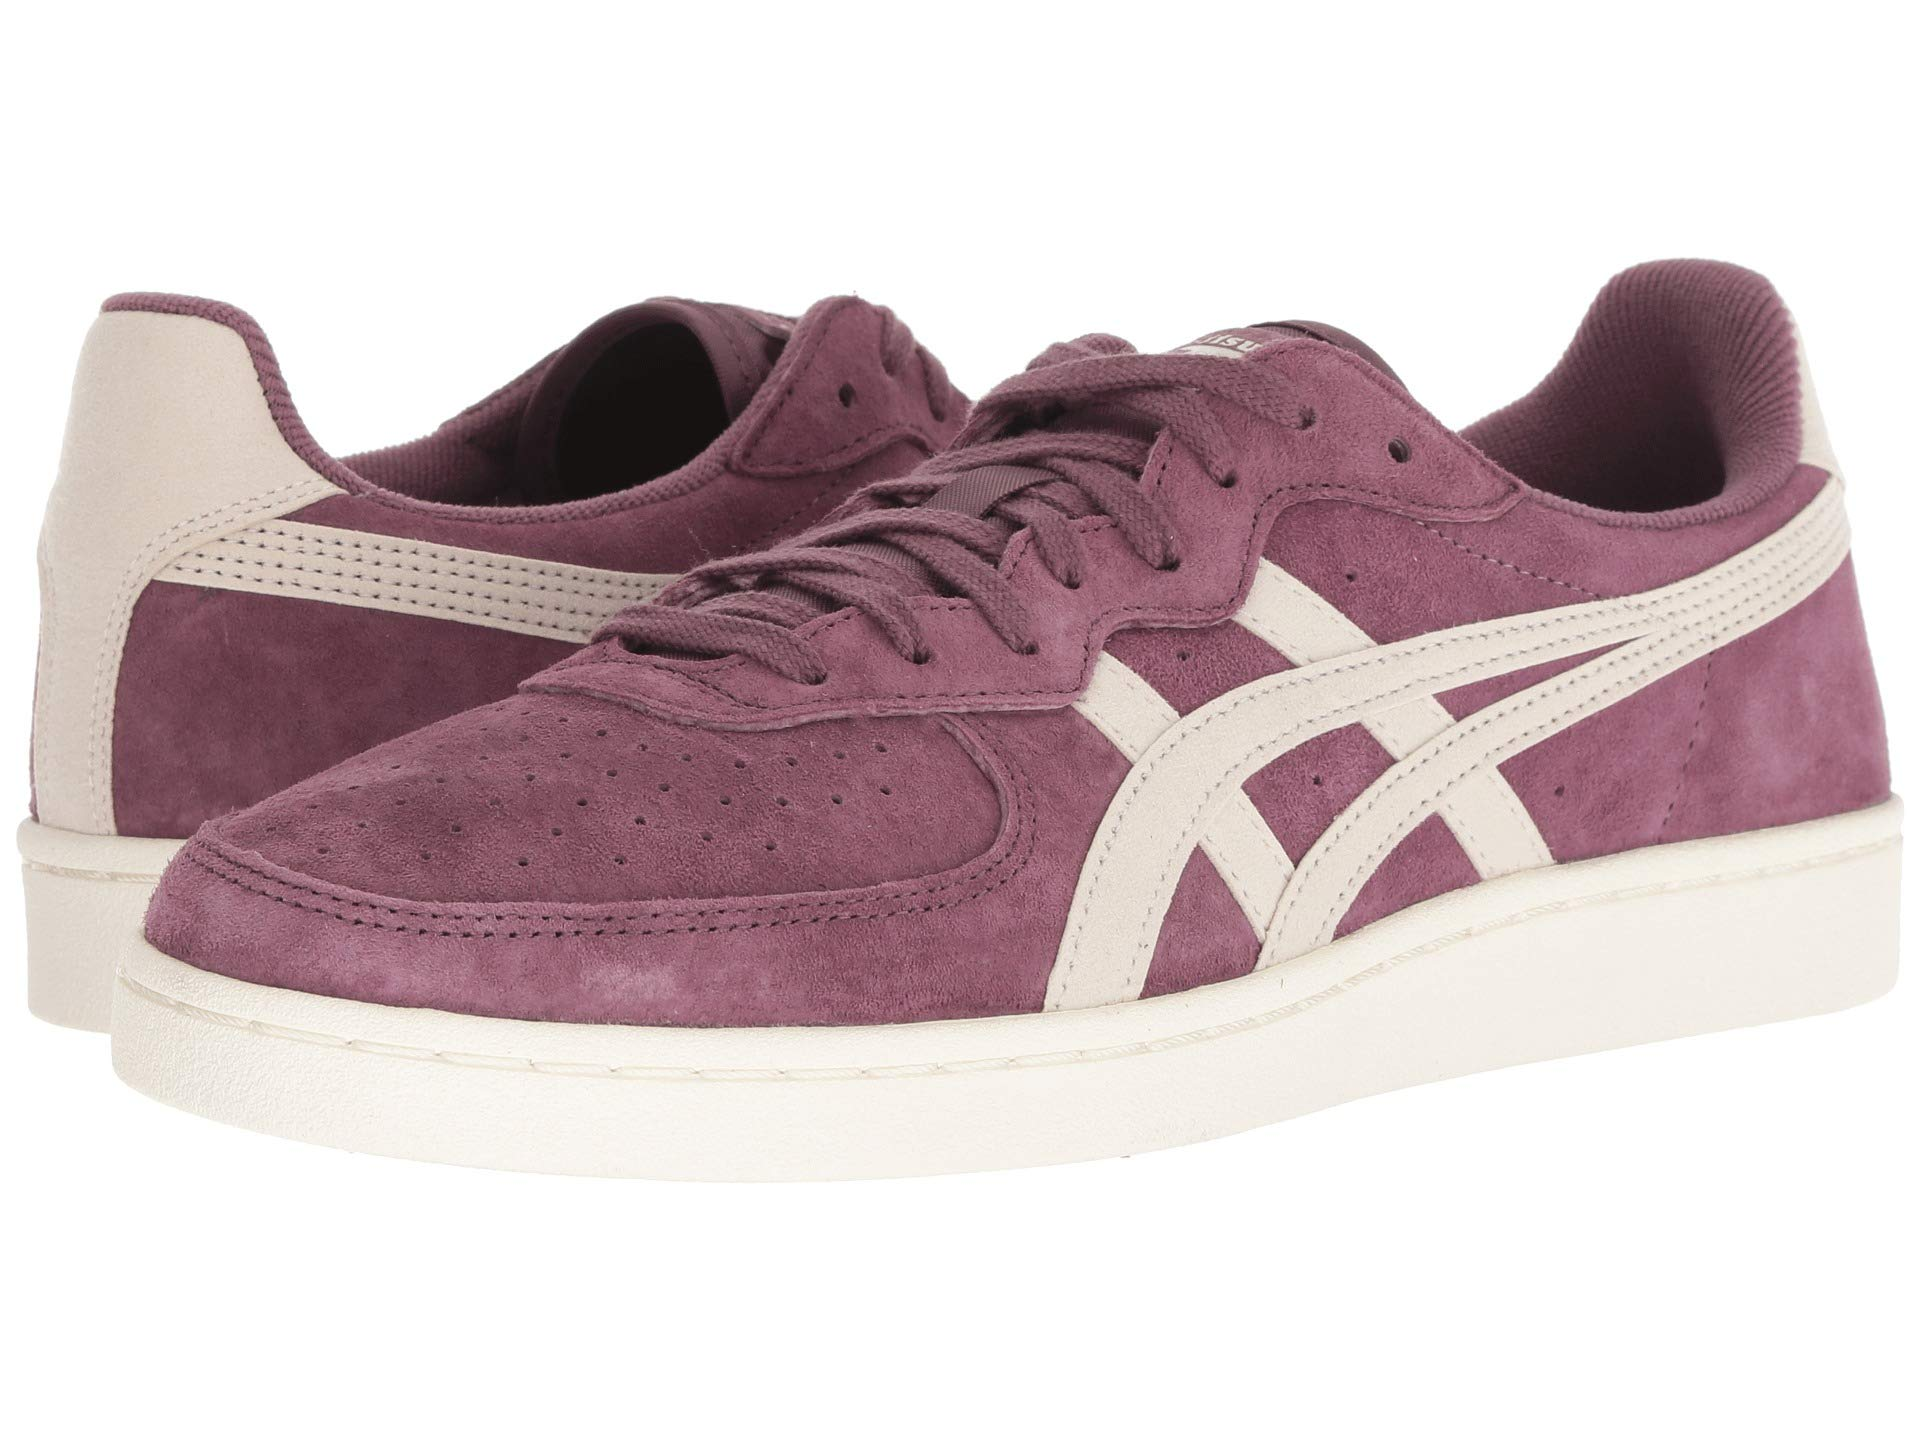 online store 3bba9 1ee9a Кроссовки Onitsuka Tiger by Asics GSM Purple, 44 (280 мм) (10103318)